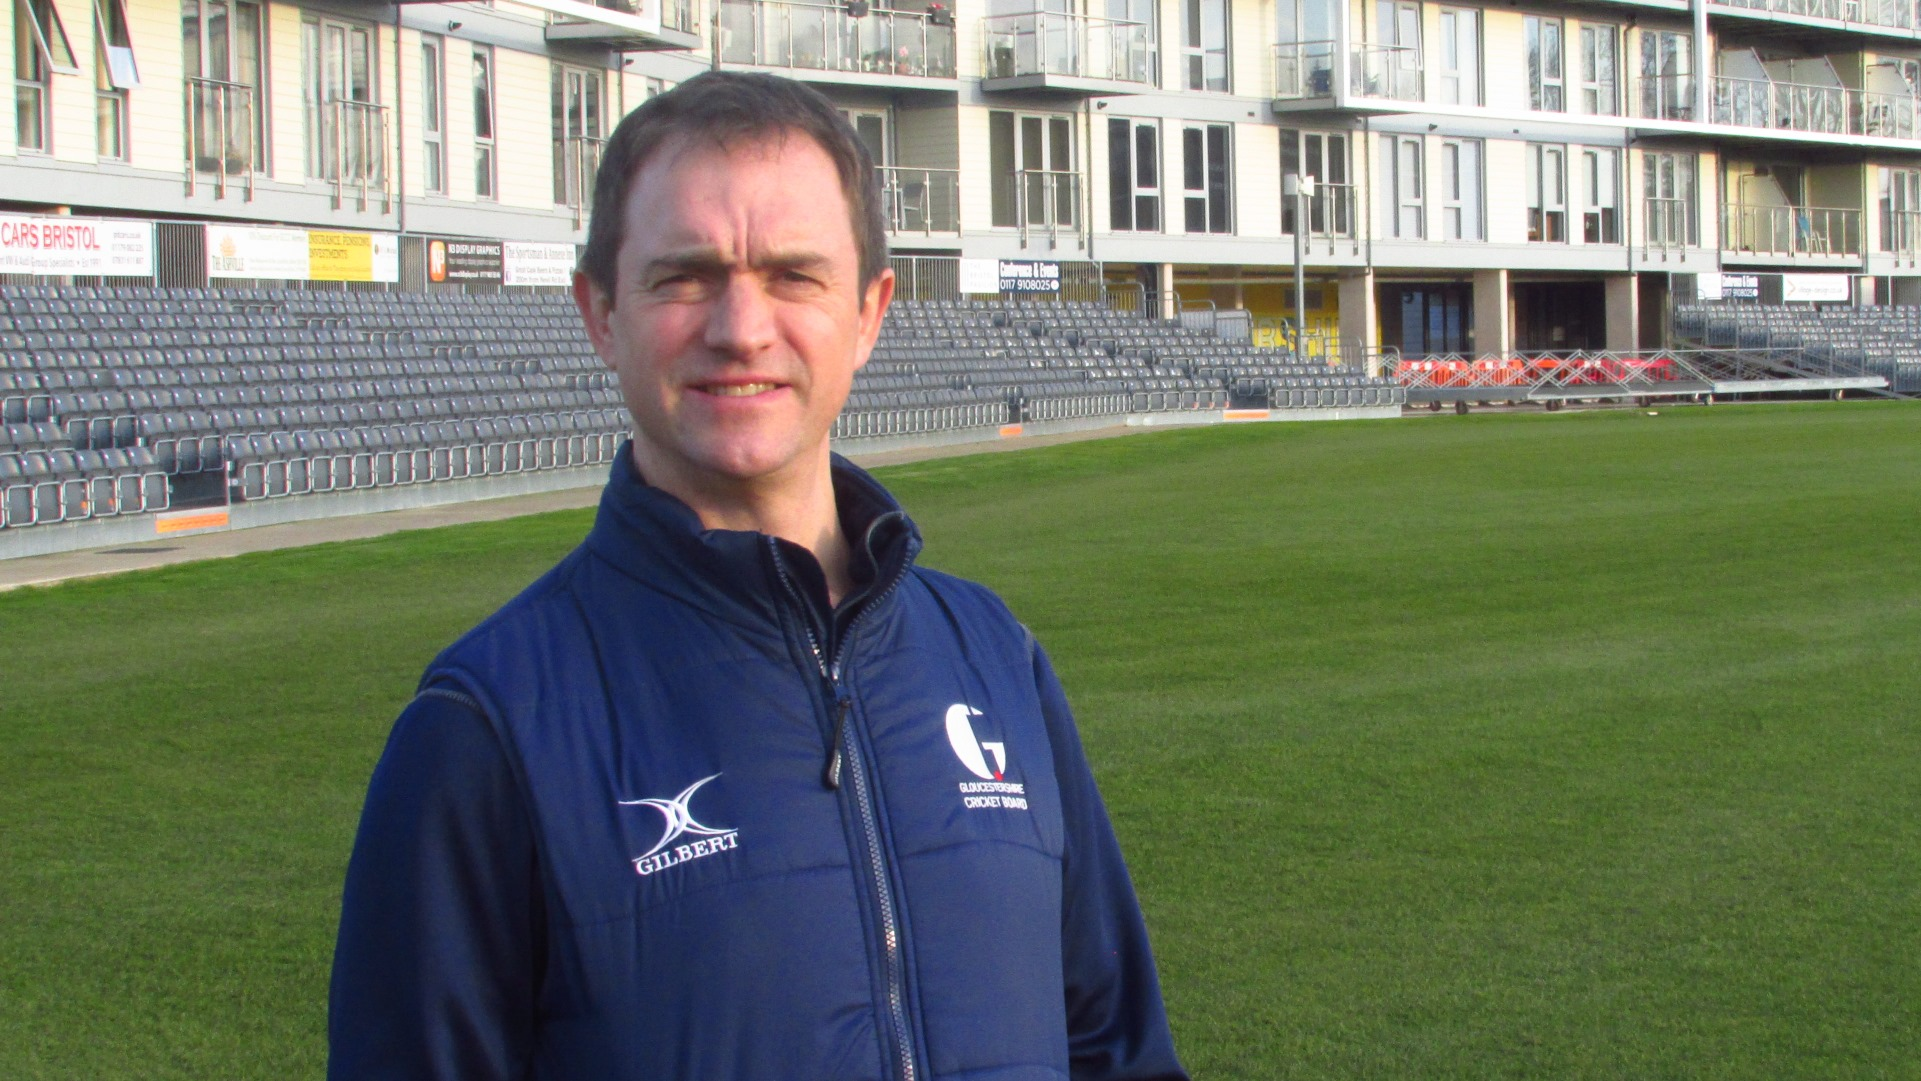 Hancock takes over Glos Academy as part of new Head of Talent Pathway role (with radio interview)